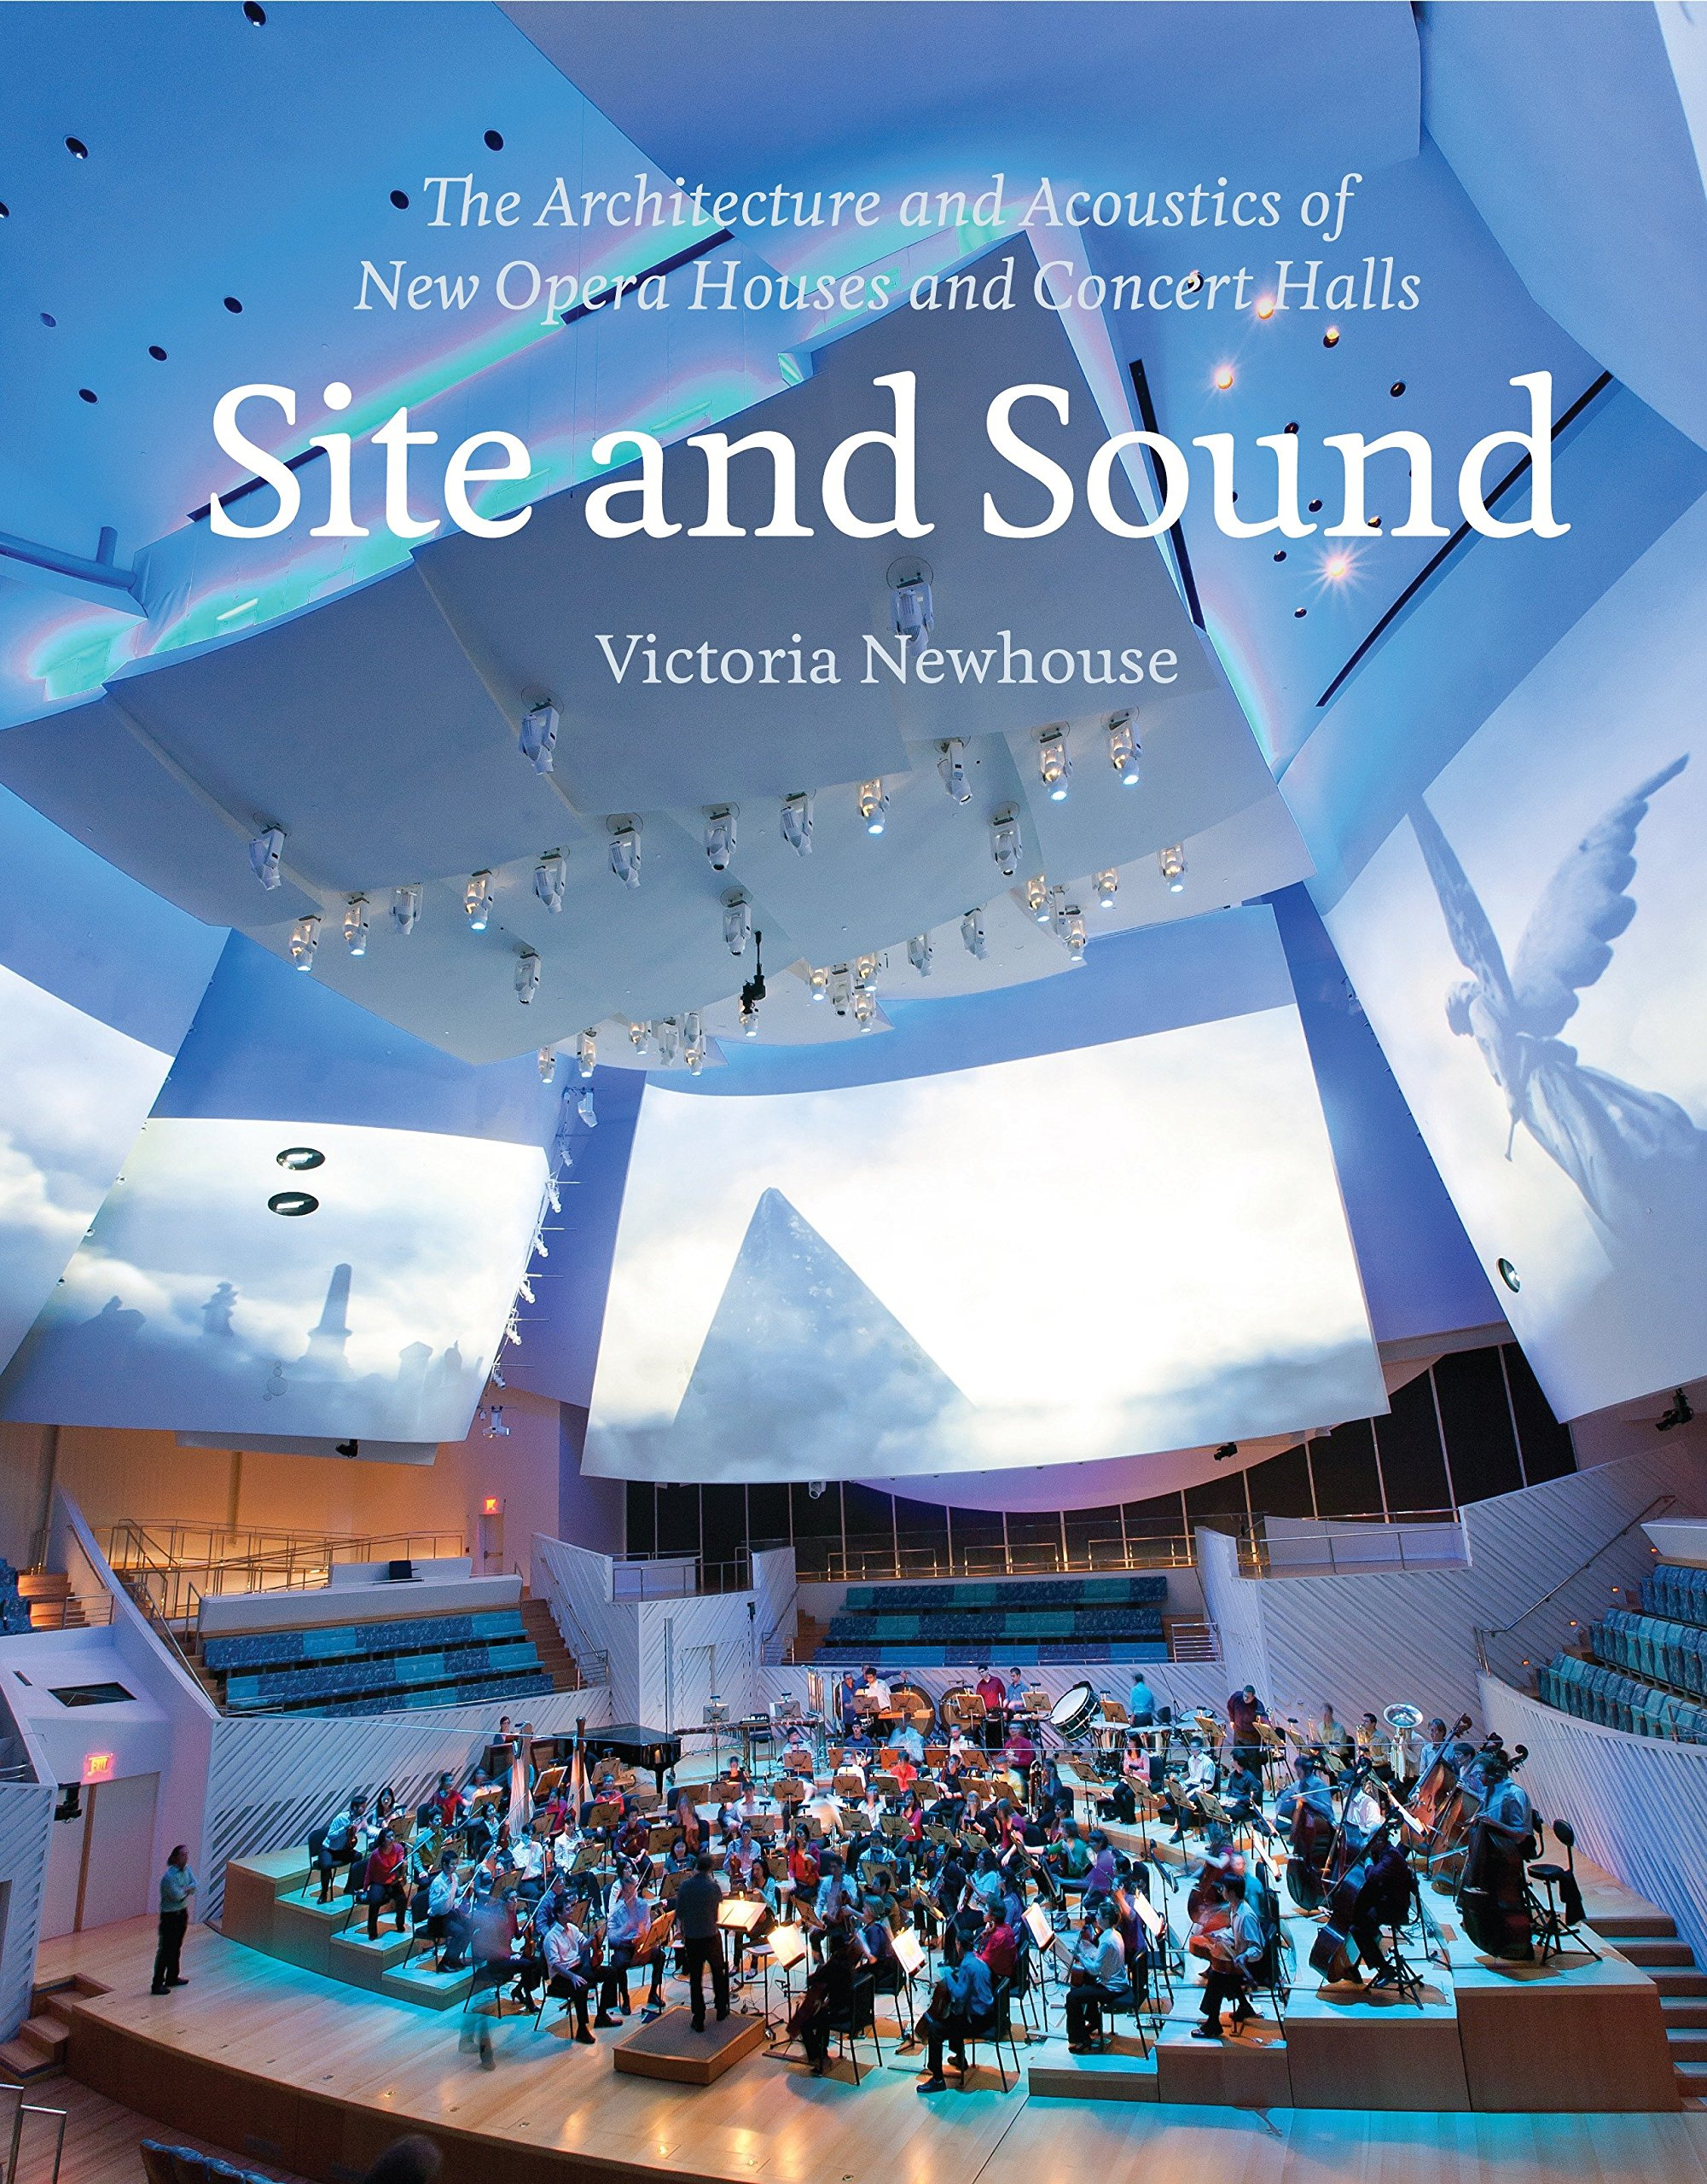 Site and Sound: The Architecture and Acoustics of New Opera Houses and Concert Halls by The Monacelli Press